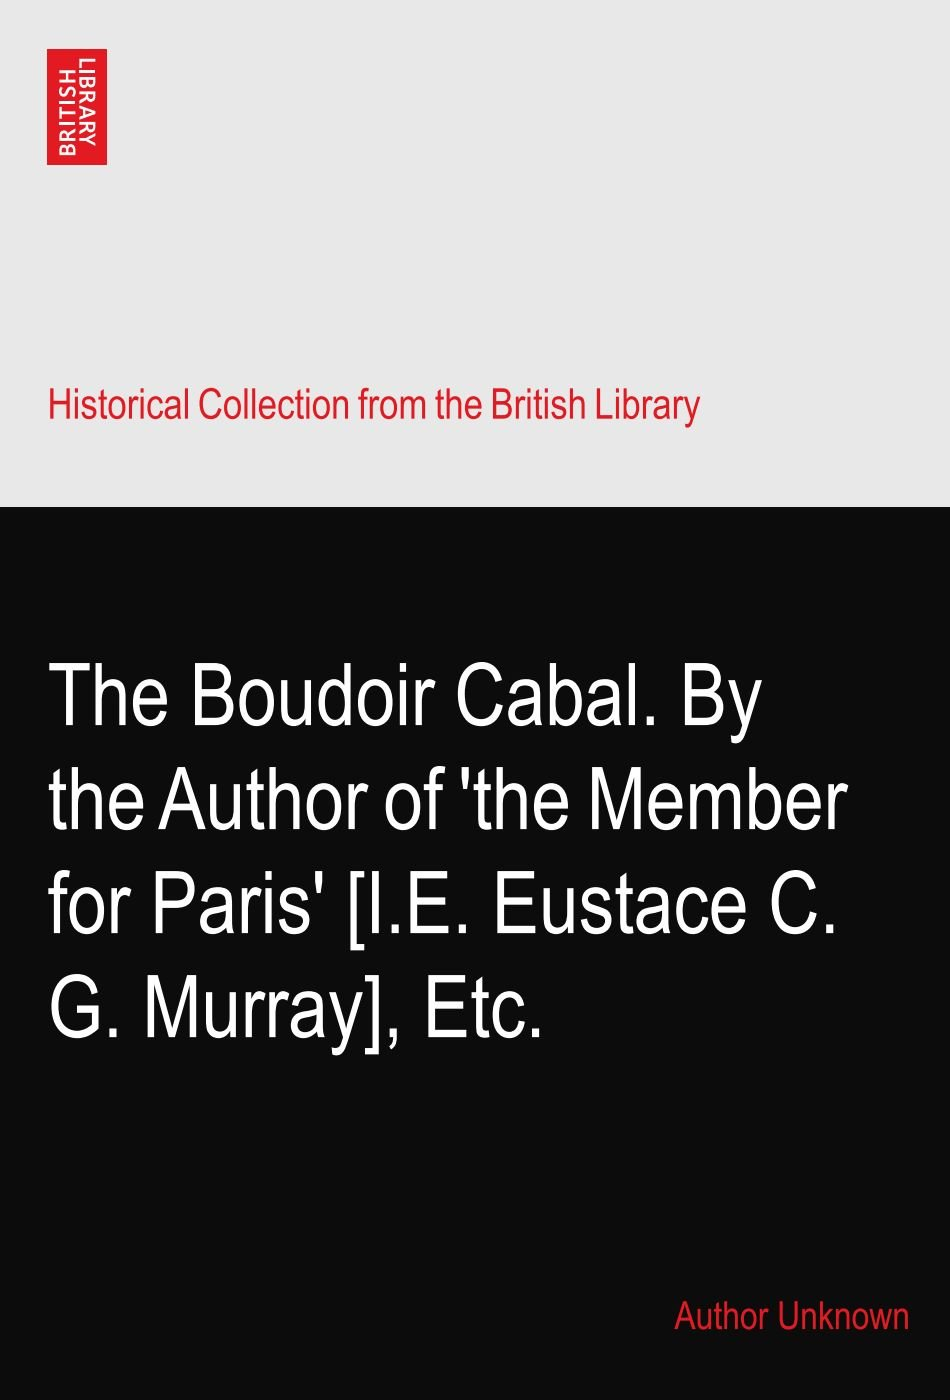 Read Online The Boudoir Cabal. By the Author of 'the Member for Paris' [I.E. Eustace C. G. Murray], Etc. ebook